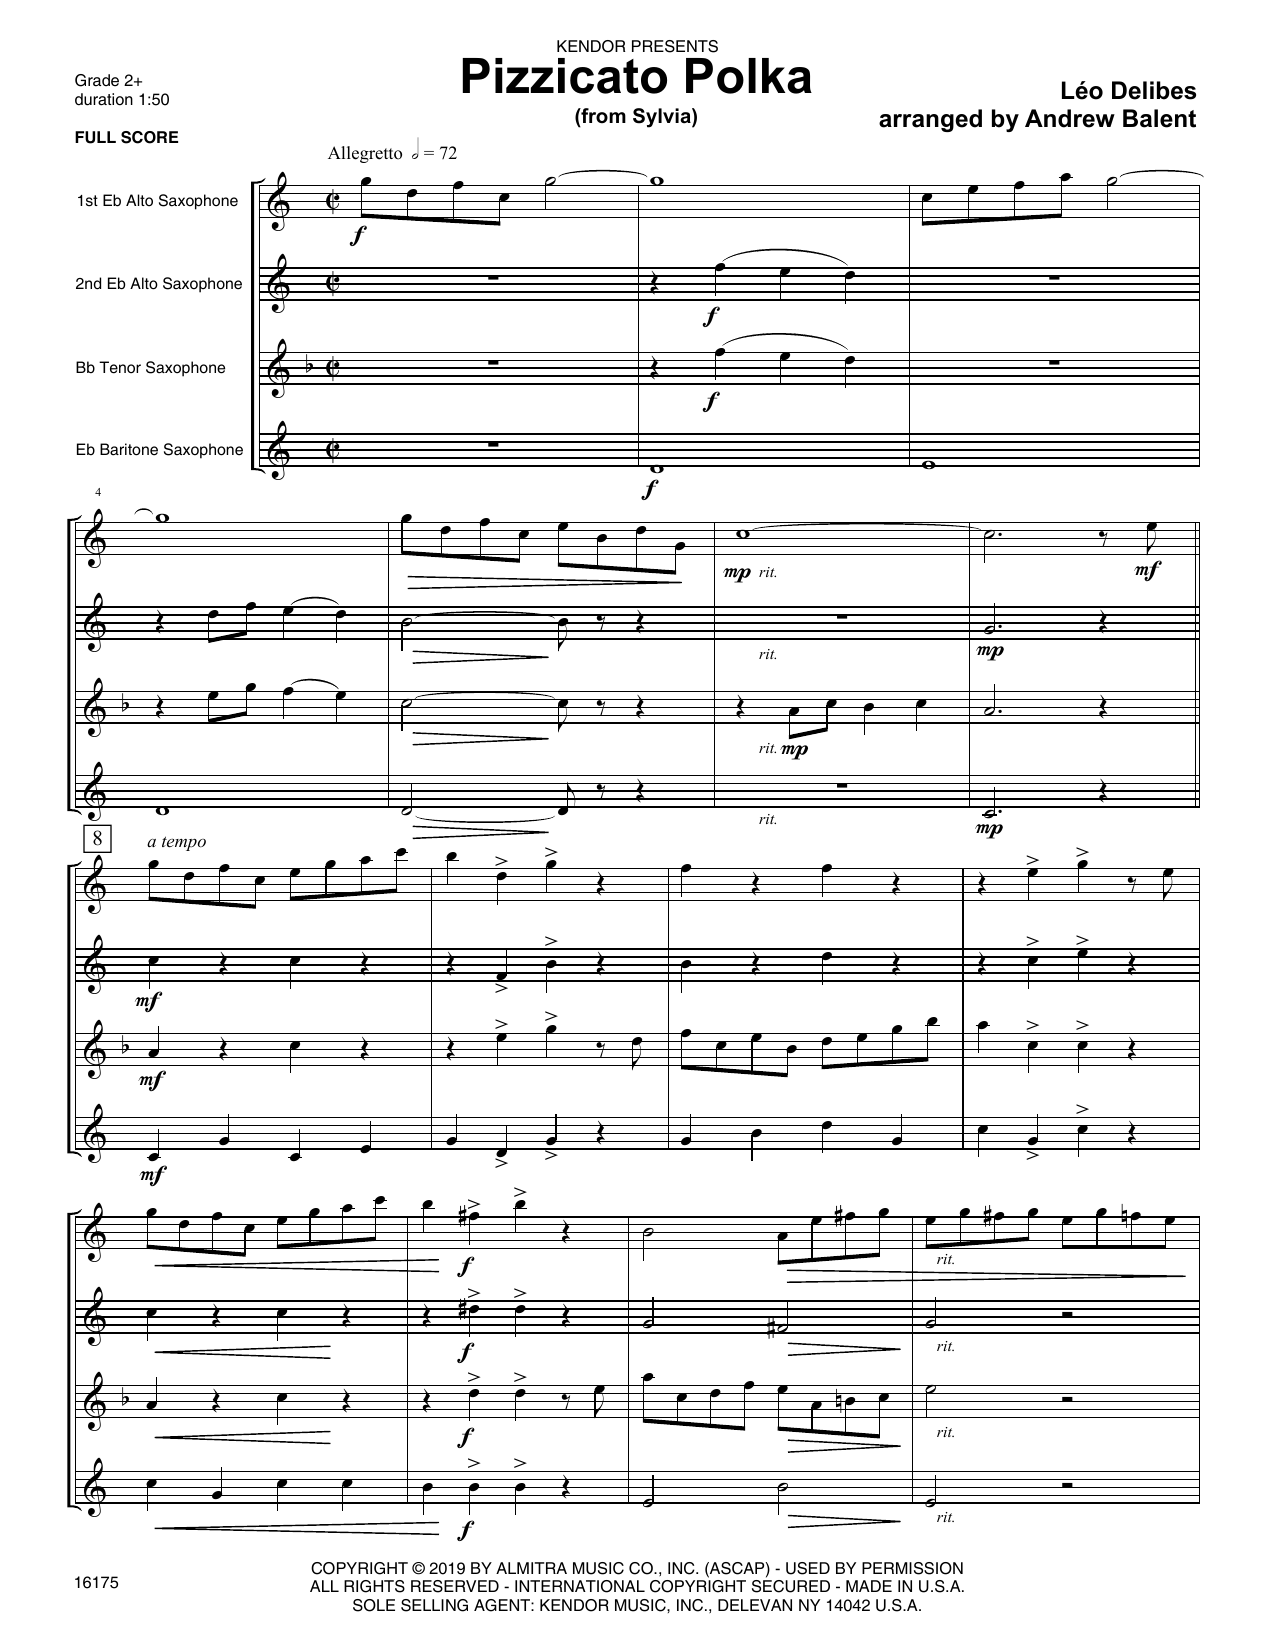 Andrew Balent Pizzicato Polka (from Sylvia) - Full Score sheet music notes and chords. Download Printable PDF.